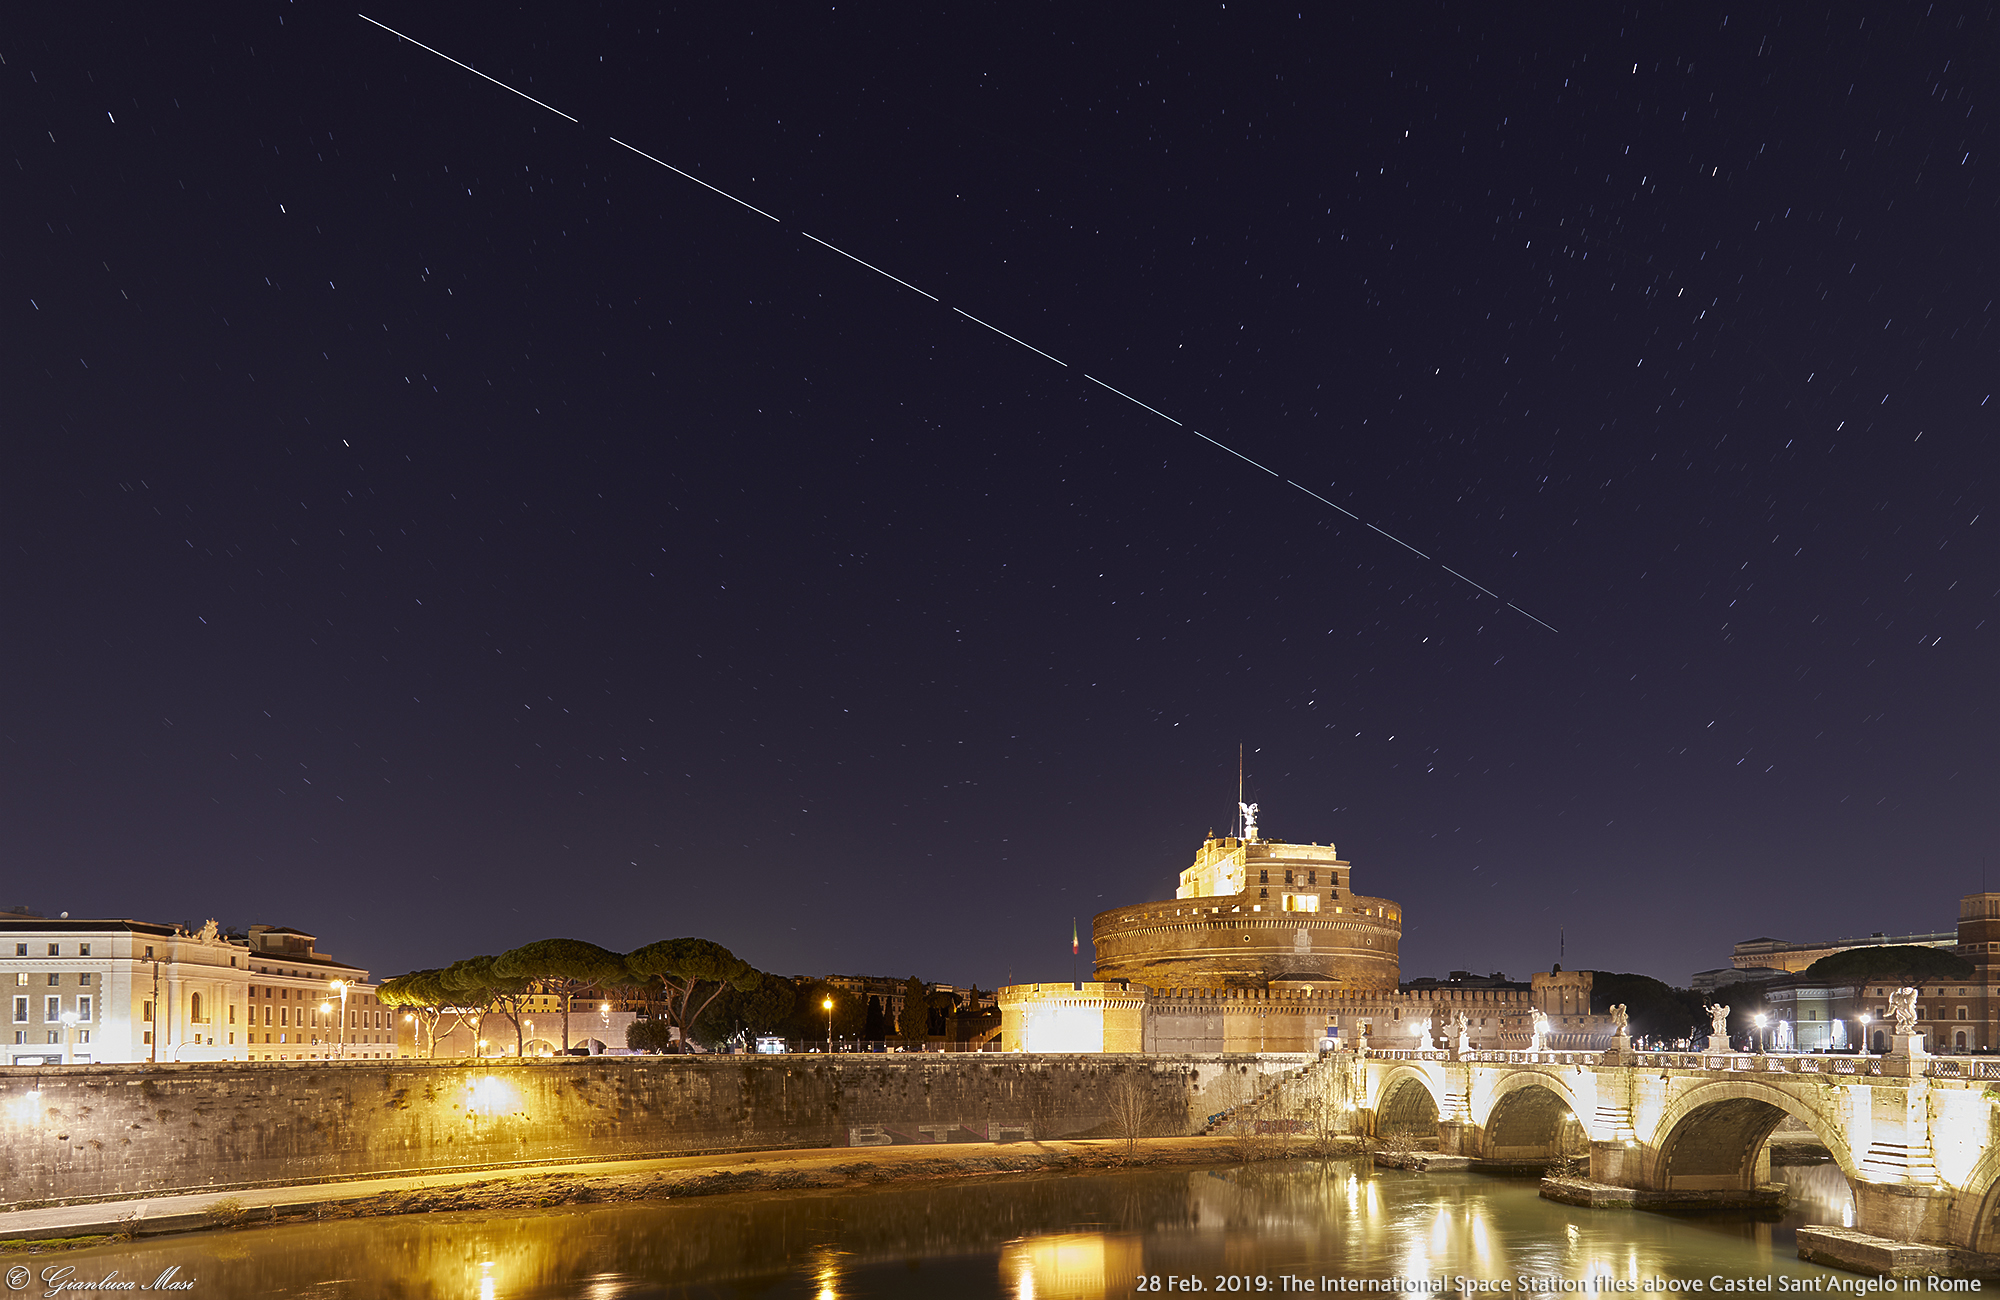 The International Space Station surfs the sky above Castel Sant'Angelo in Rome - 28 Feb. 2019.